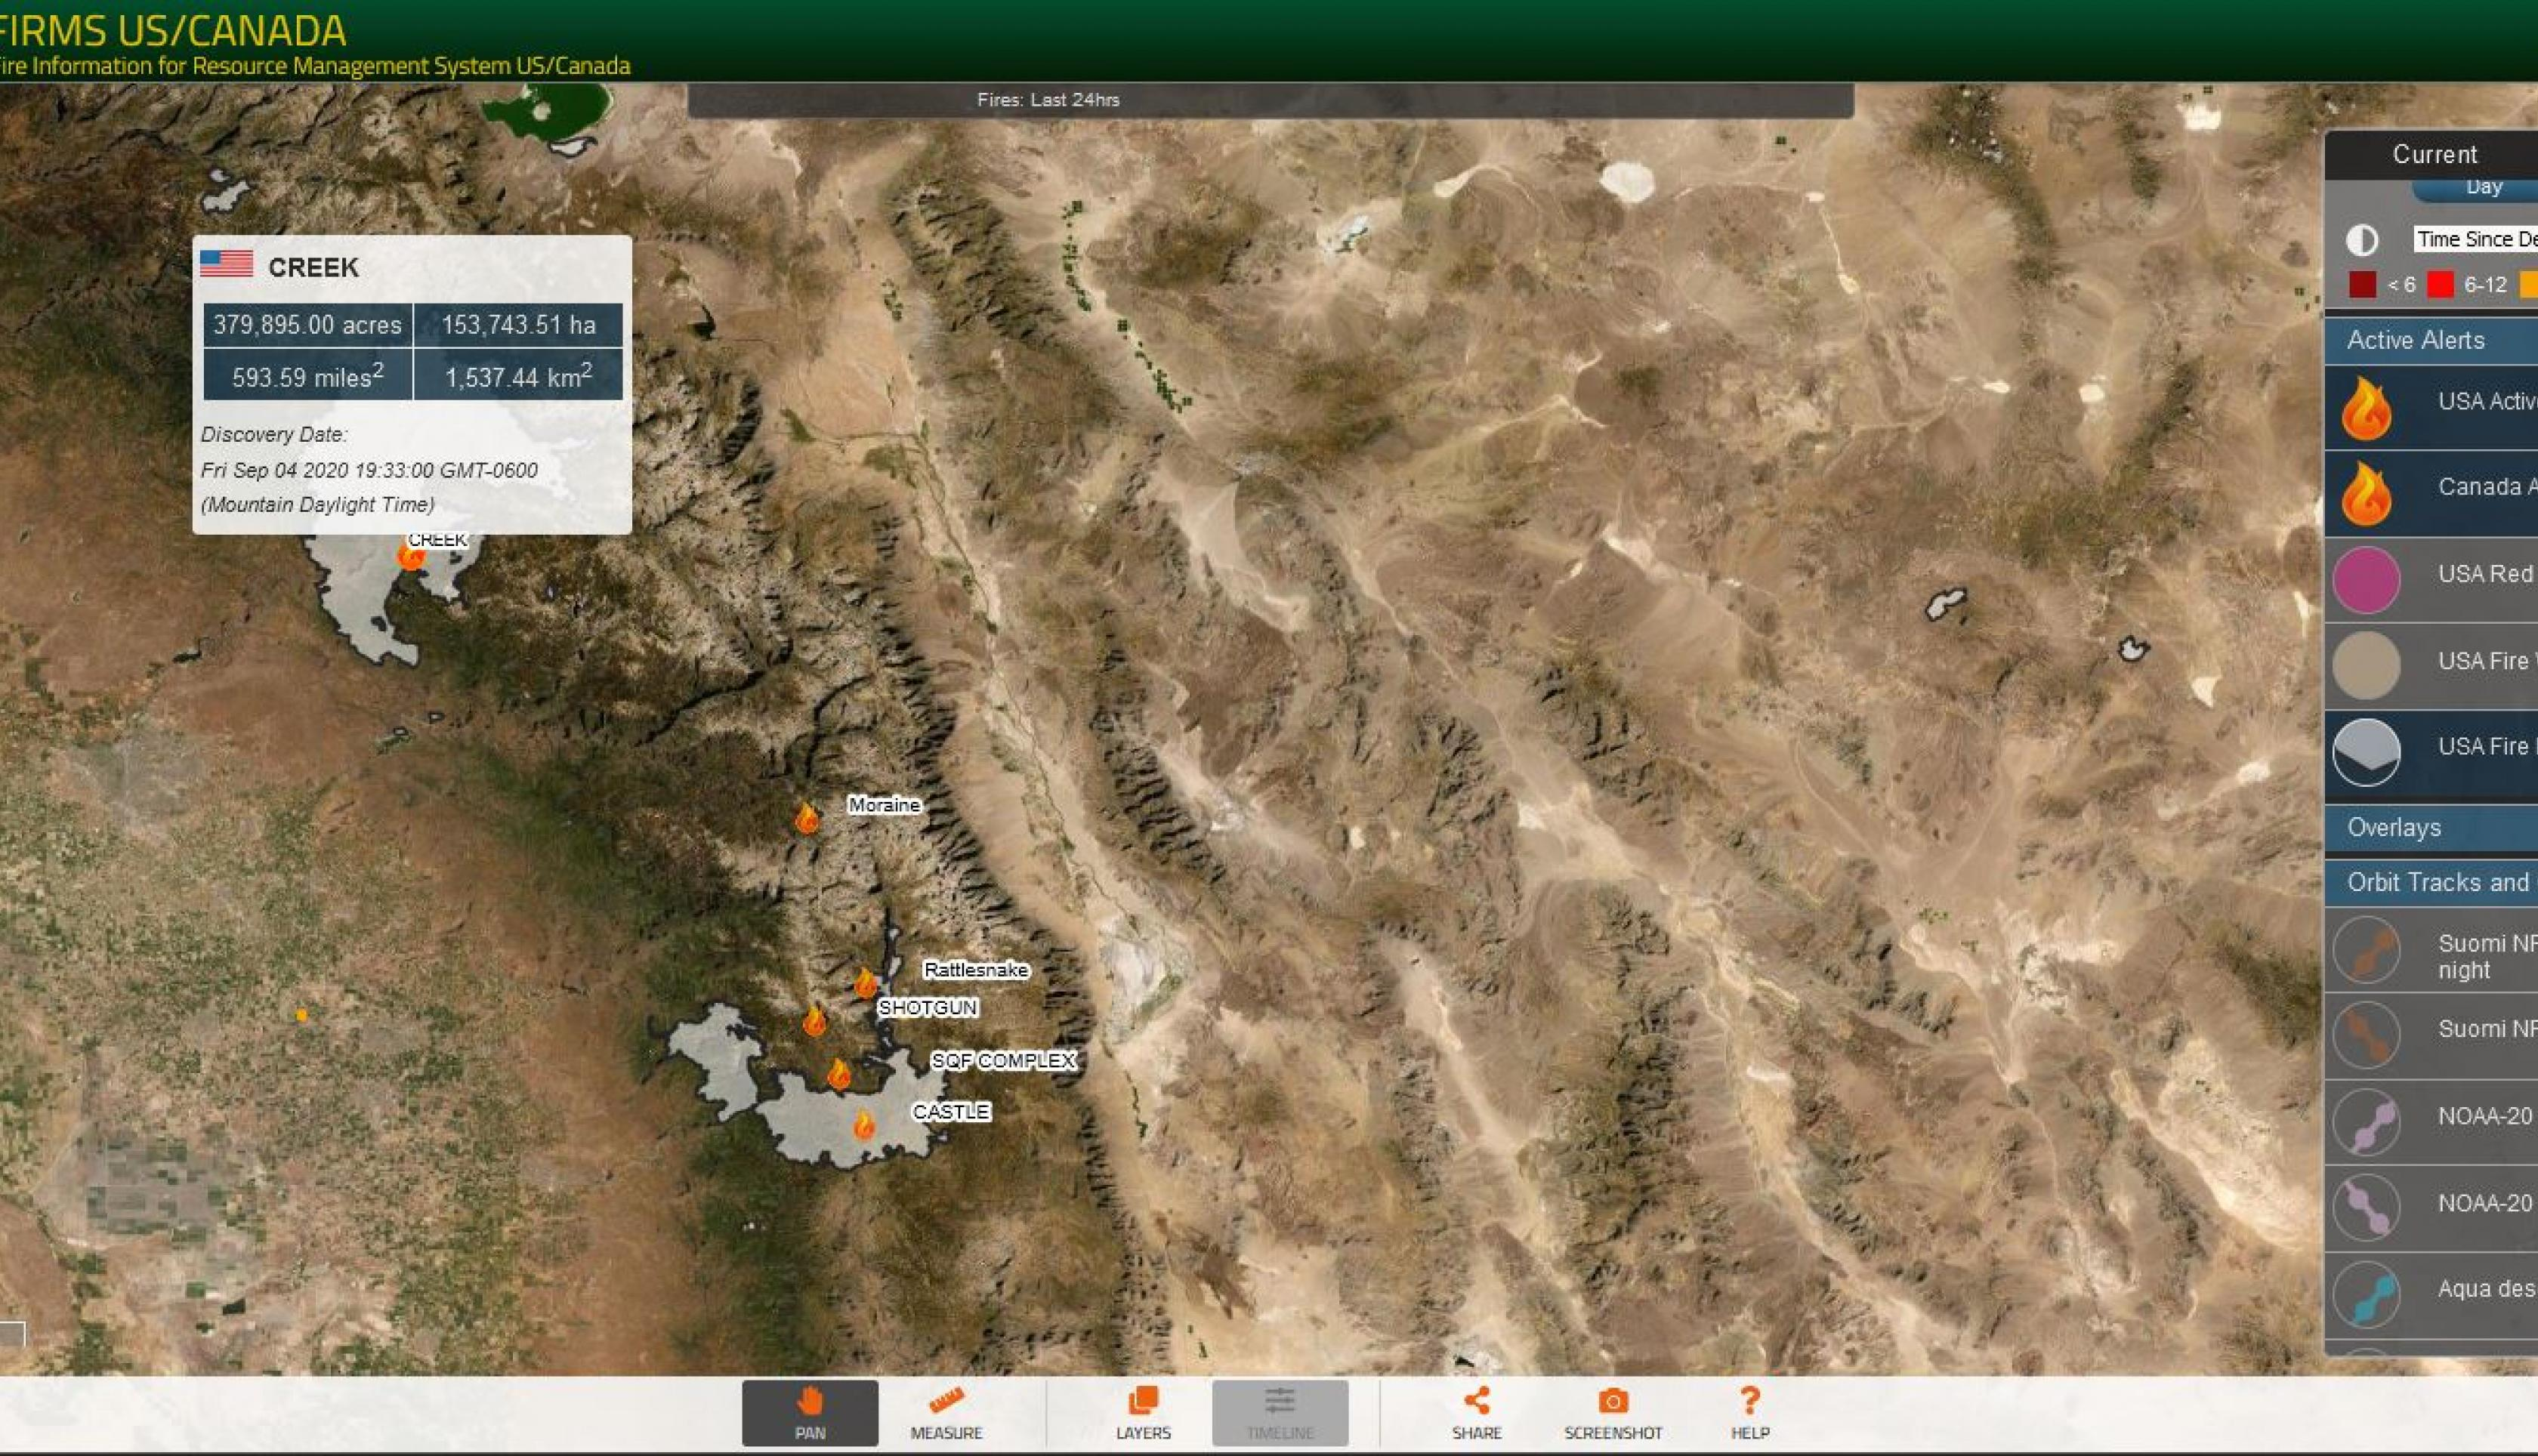 A screenshot of the FIRMS US/Canada fire map highlighting California's Creek Fire in September 2020, from the U.S. large incident locations layer (sourced from the Integrated Reporting of Wildland Fire and Information (IRWIN) and the USA fire perimeter layer (from the National Incident Feature Service (NIFS)). Credits: NASA